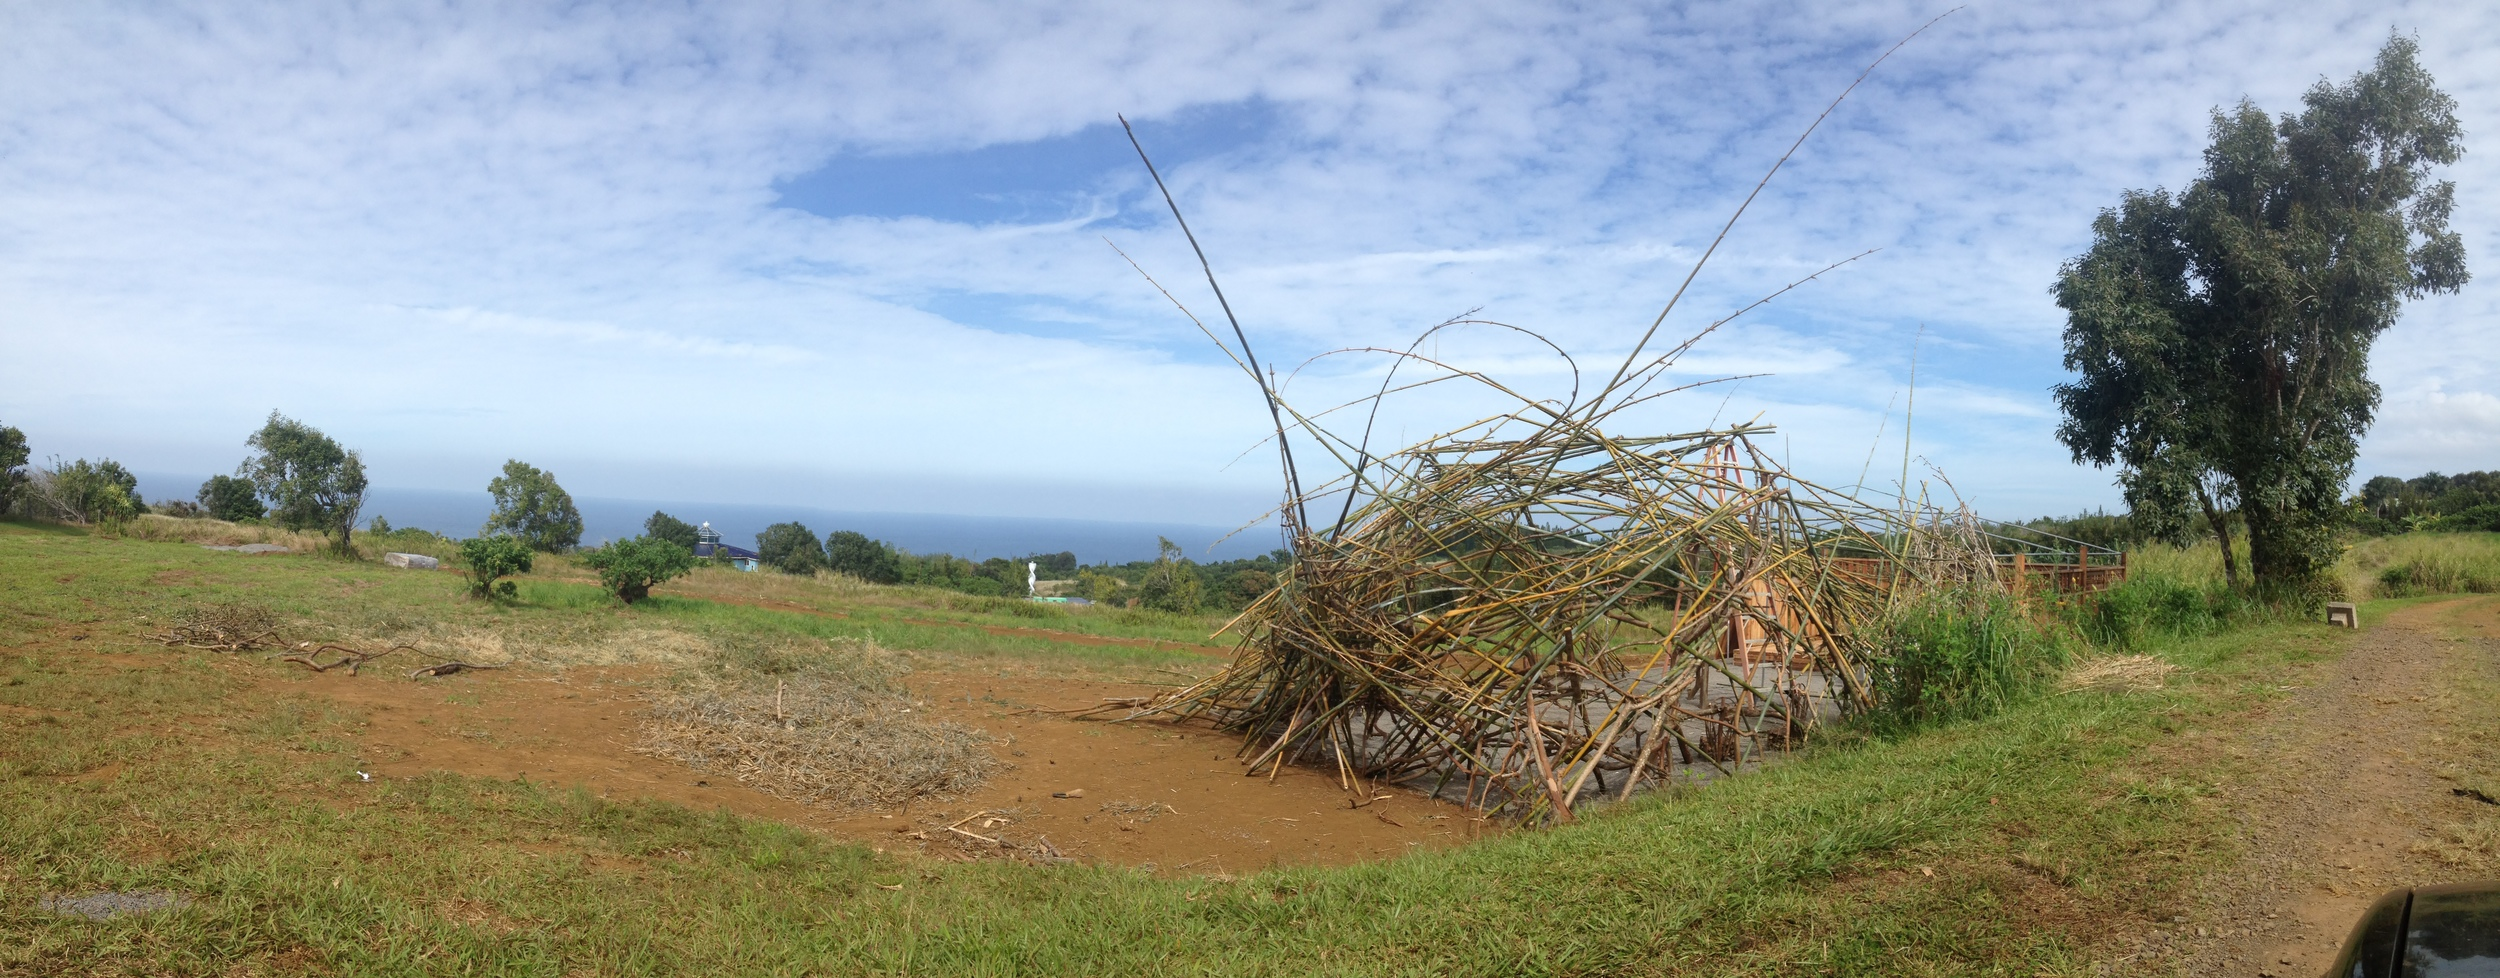 Maui Sacred Earth Temple 2014